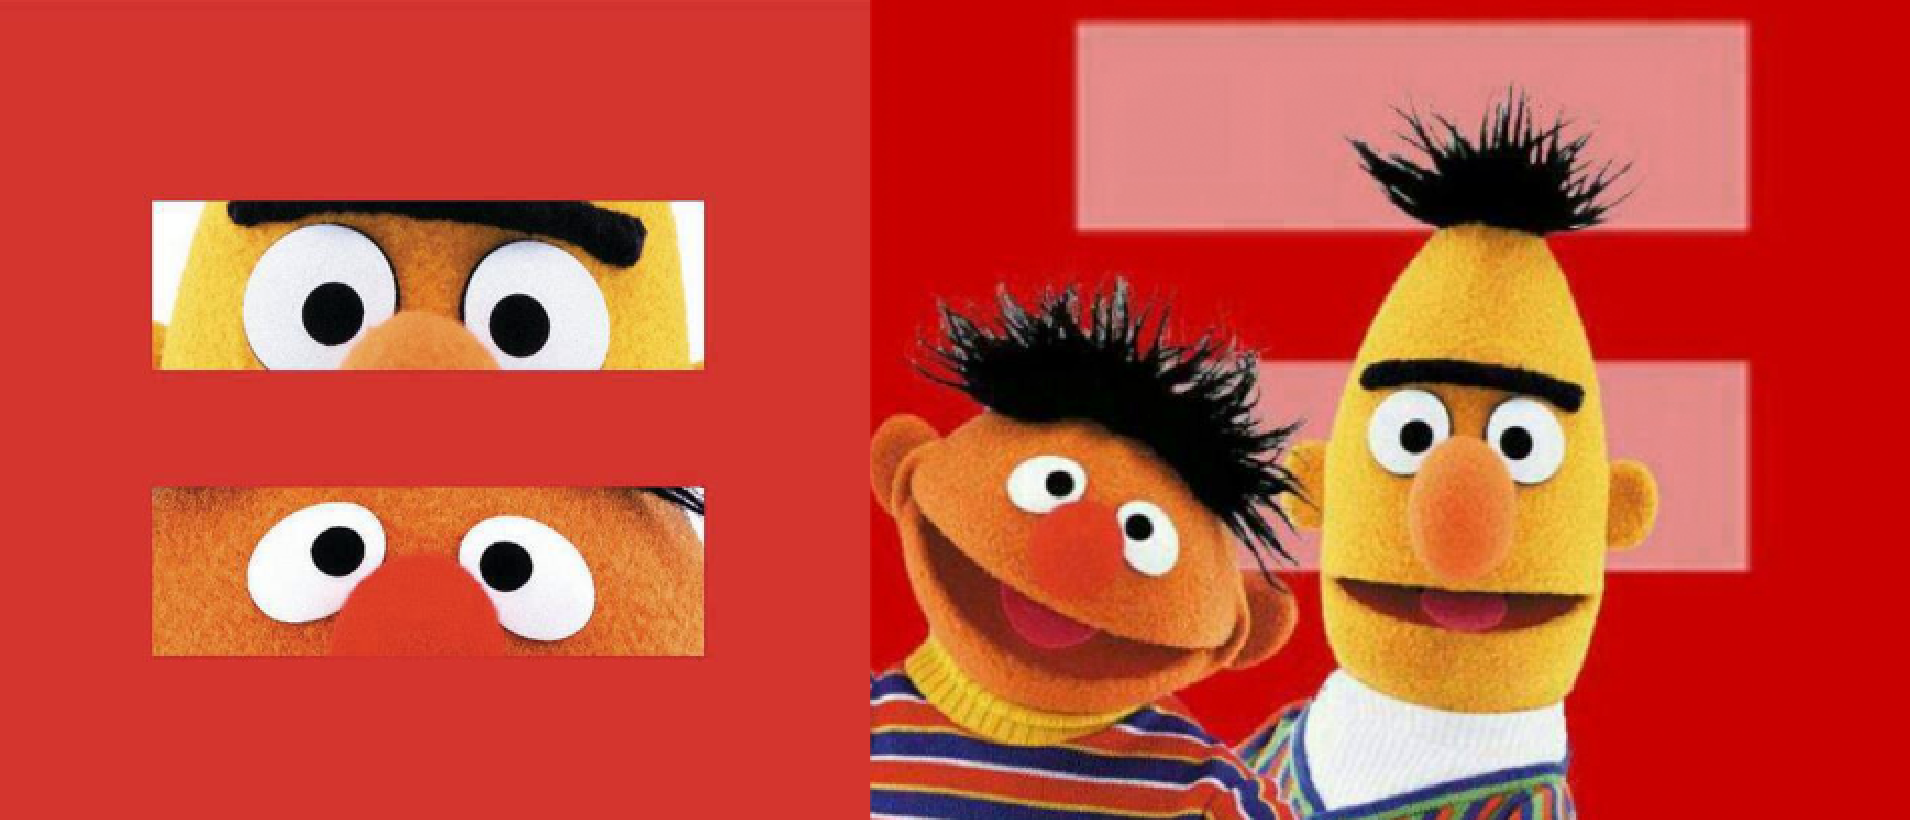 bert and ernie equality via million puppet march